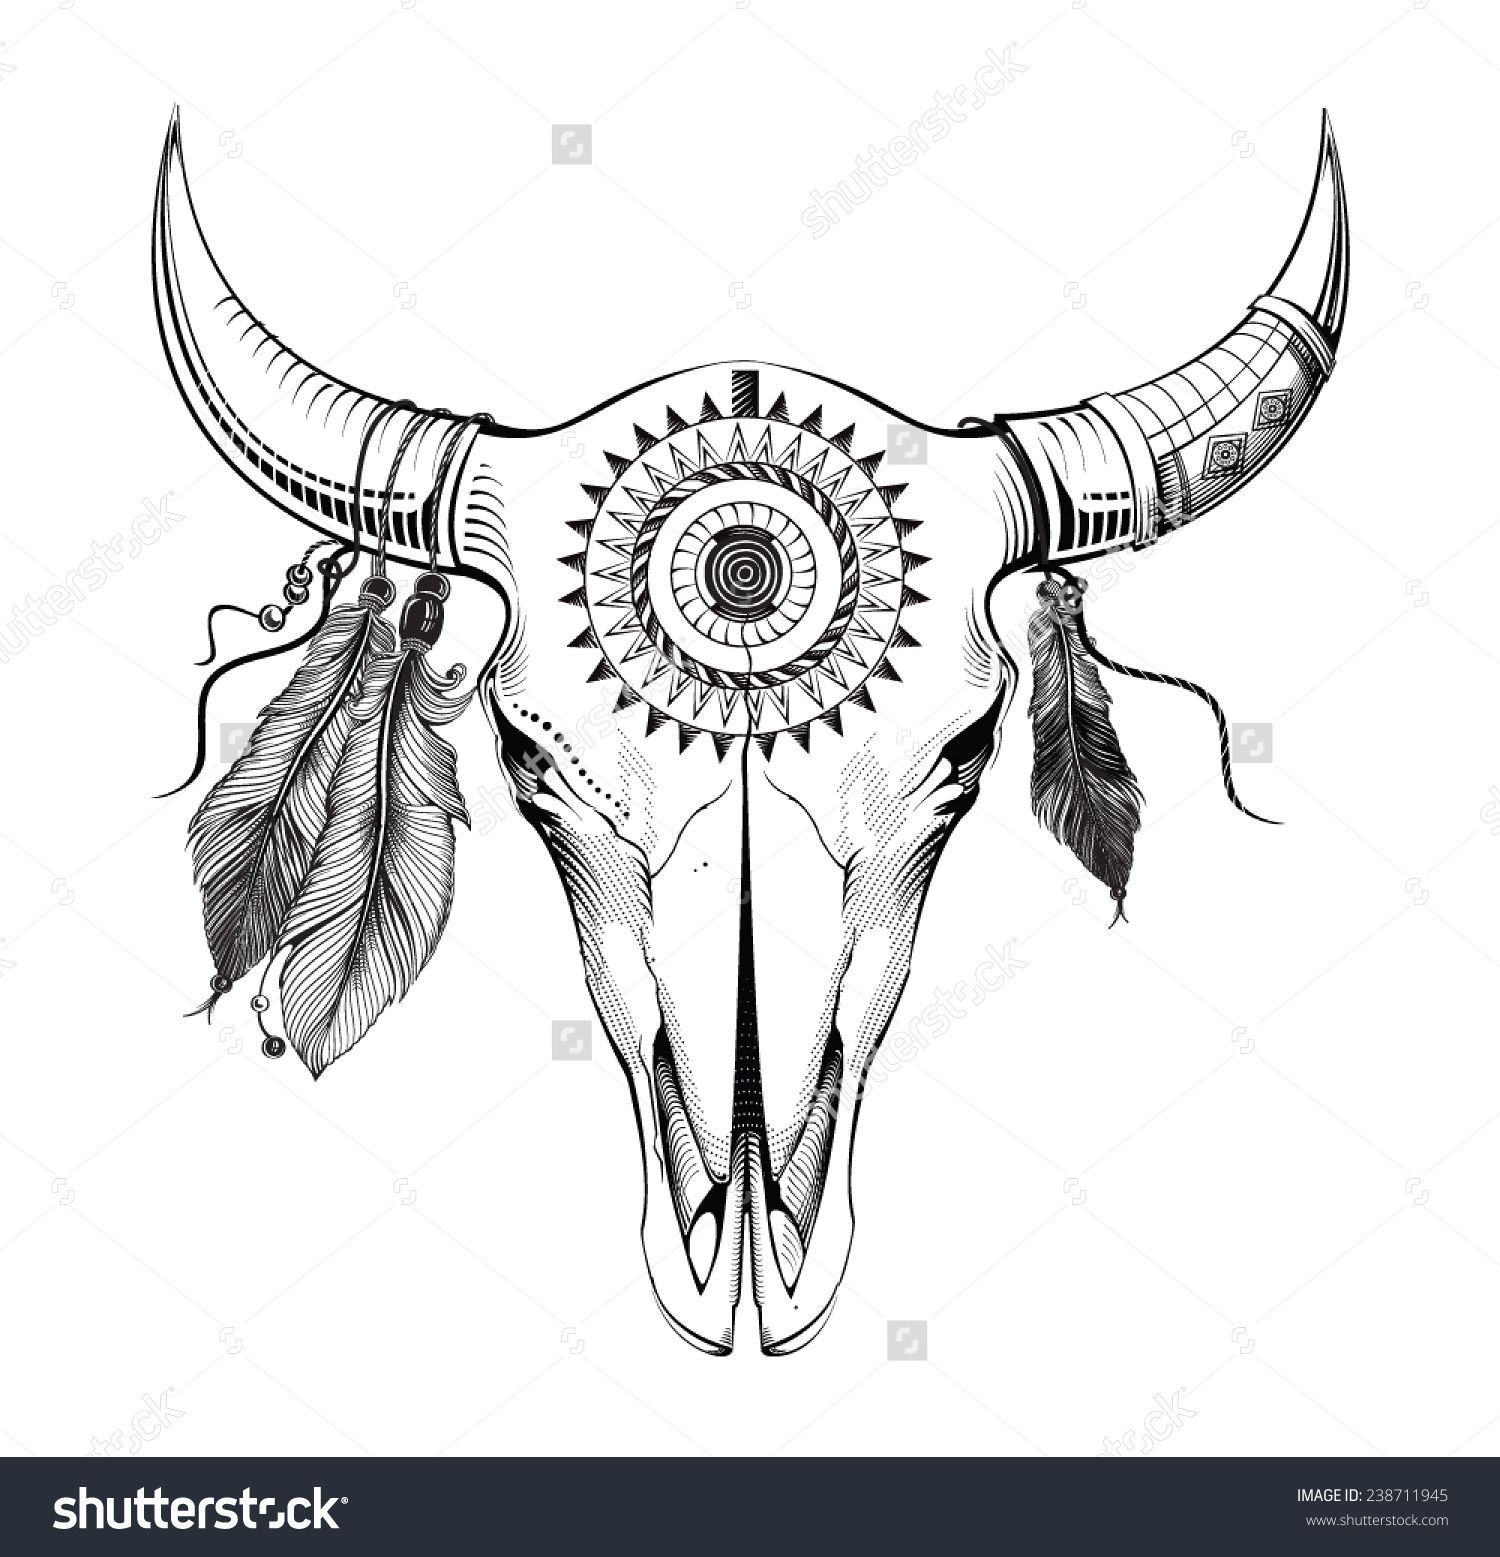 Decorated Cow Heads Google Search Coloring Pages Bull